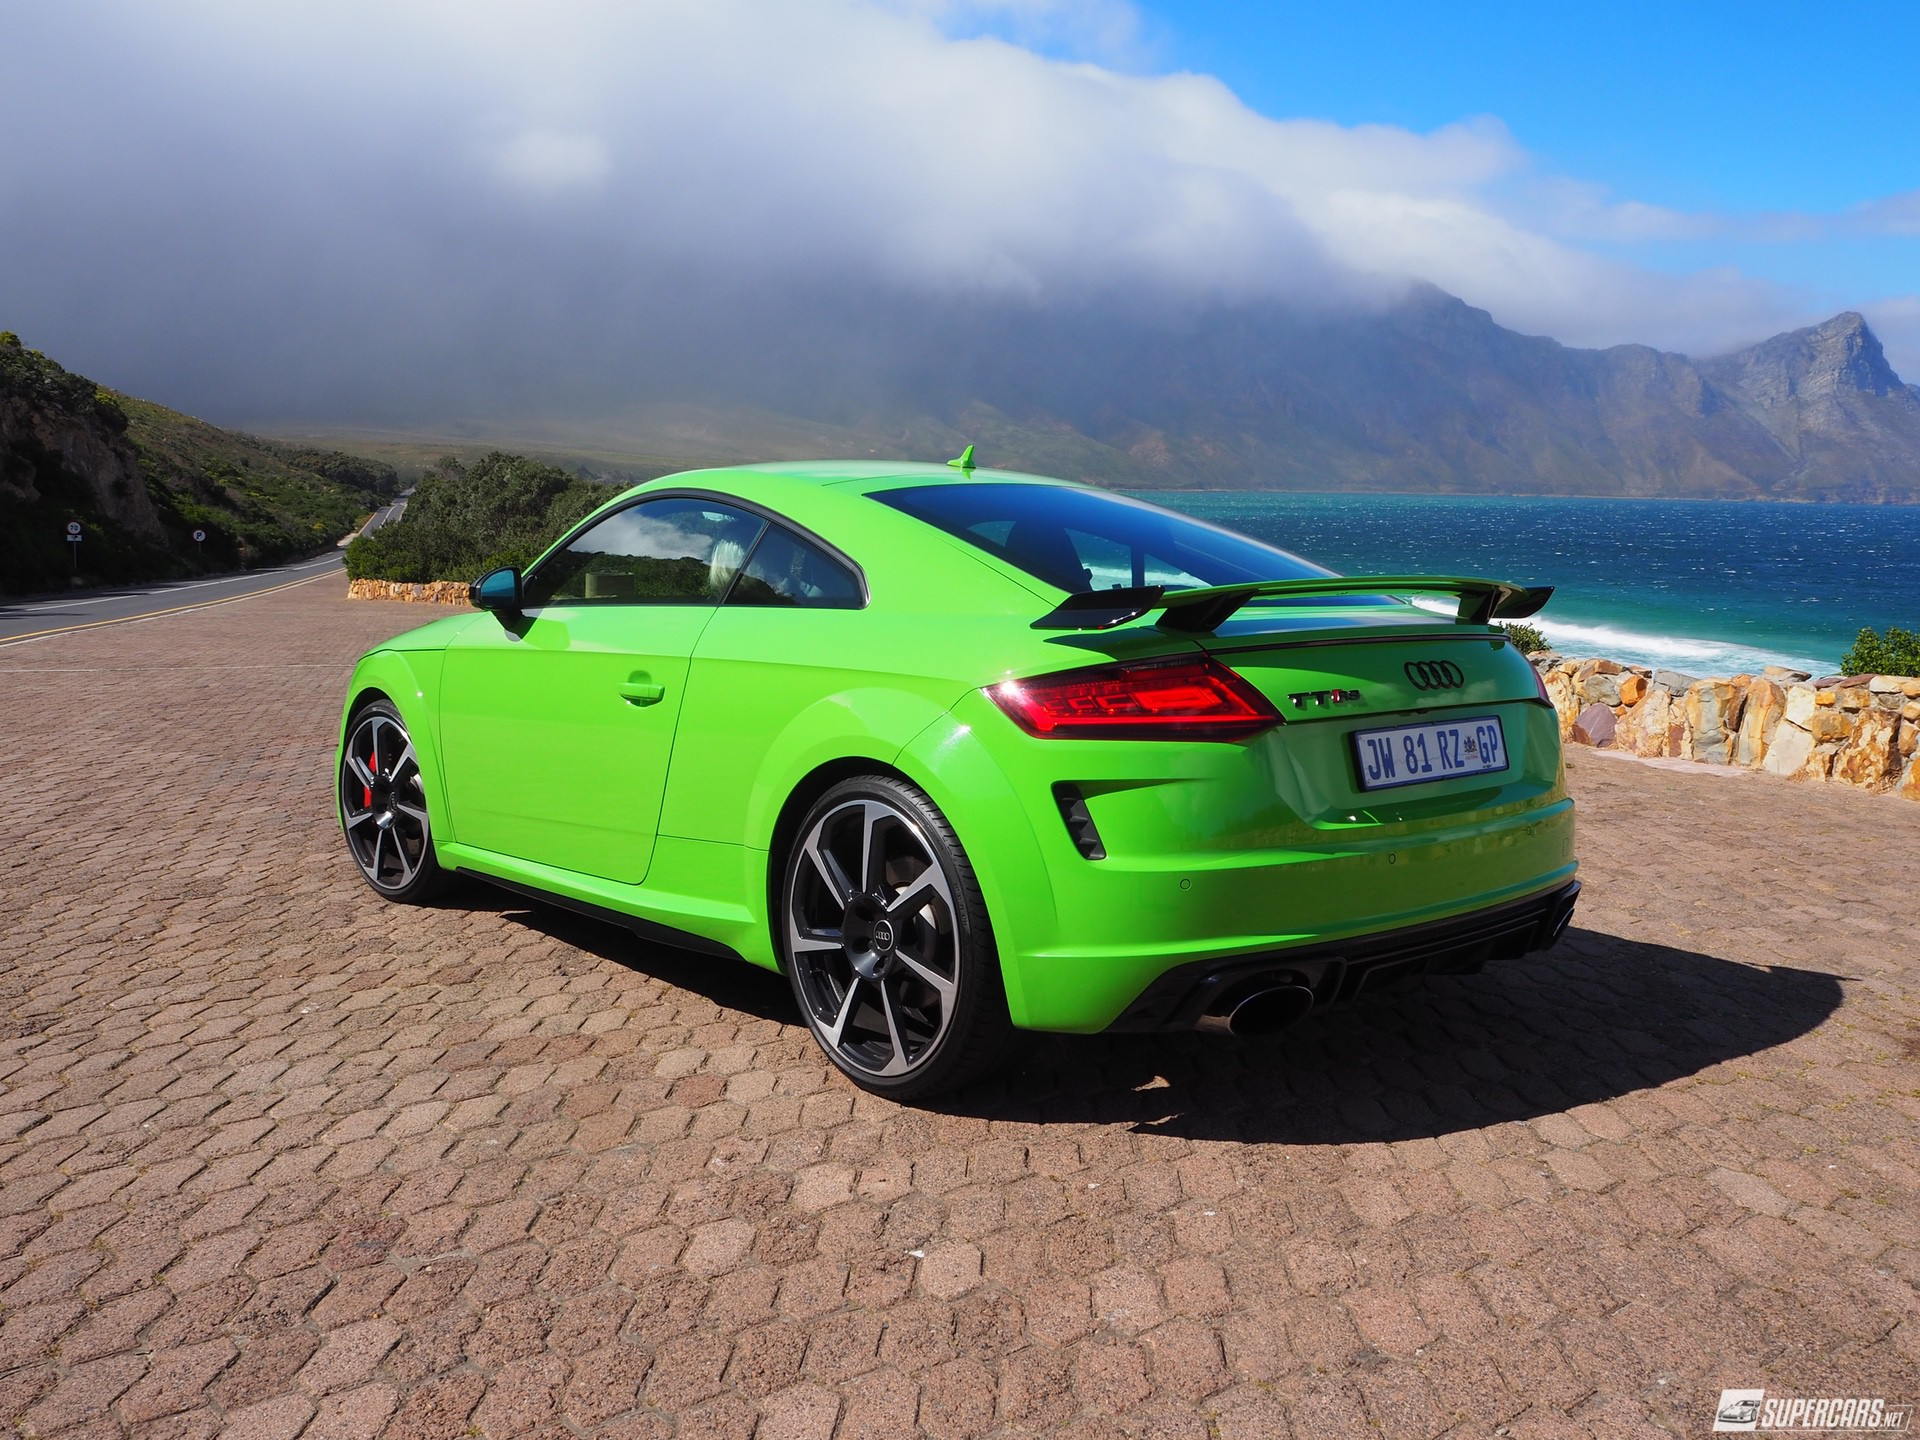 Green 2022 Audi TT-RS parked on side of road near ocean and mountains